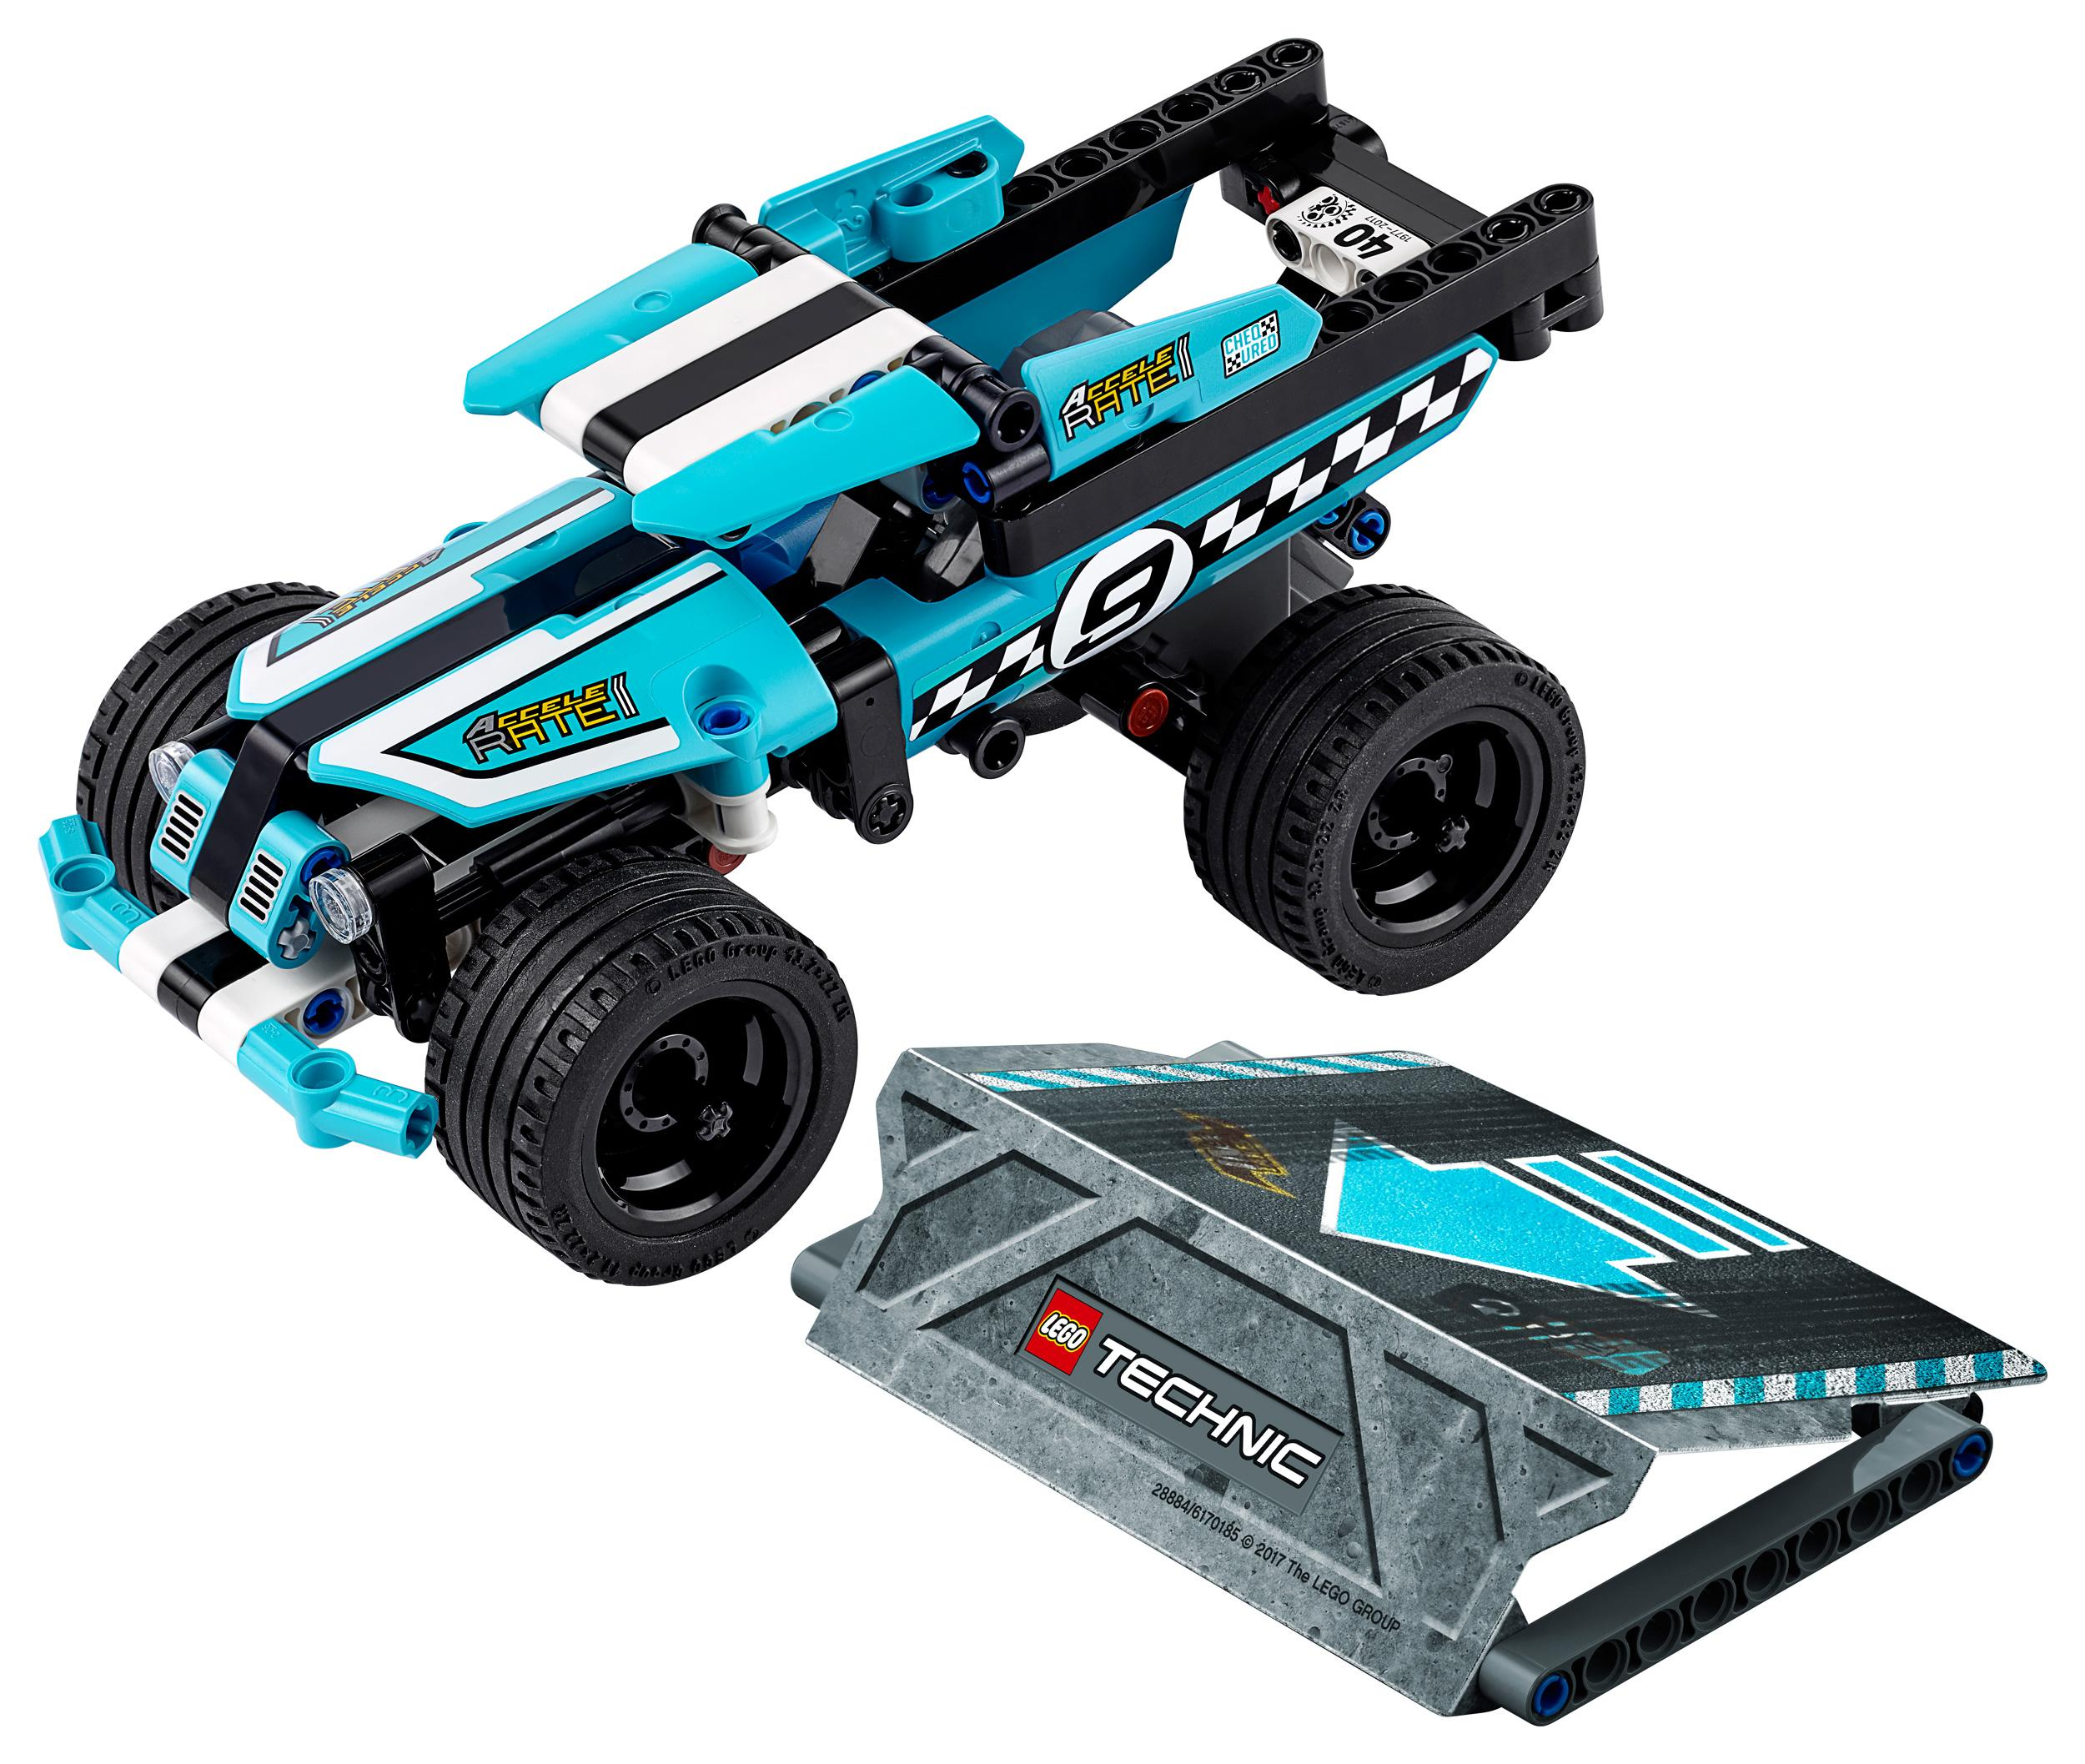 lego technic stunt truck 42059 vehicle set building toy toys games. Black Bedroom Furniture Sets. Home Design Ideas